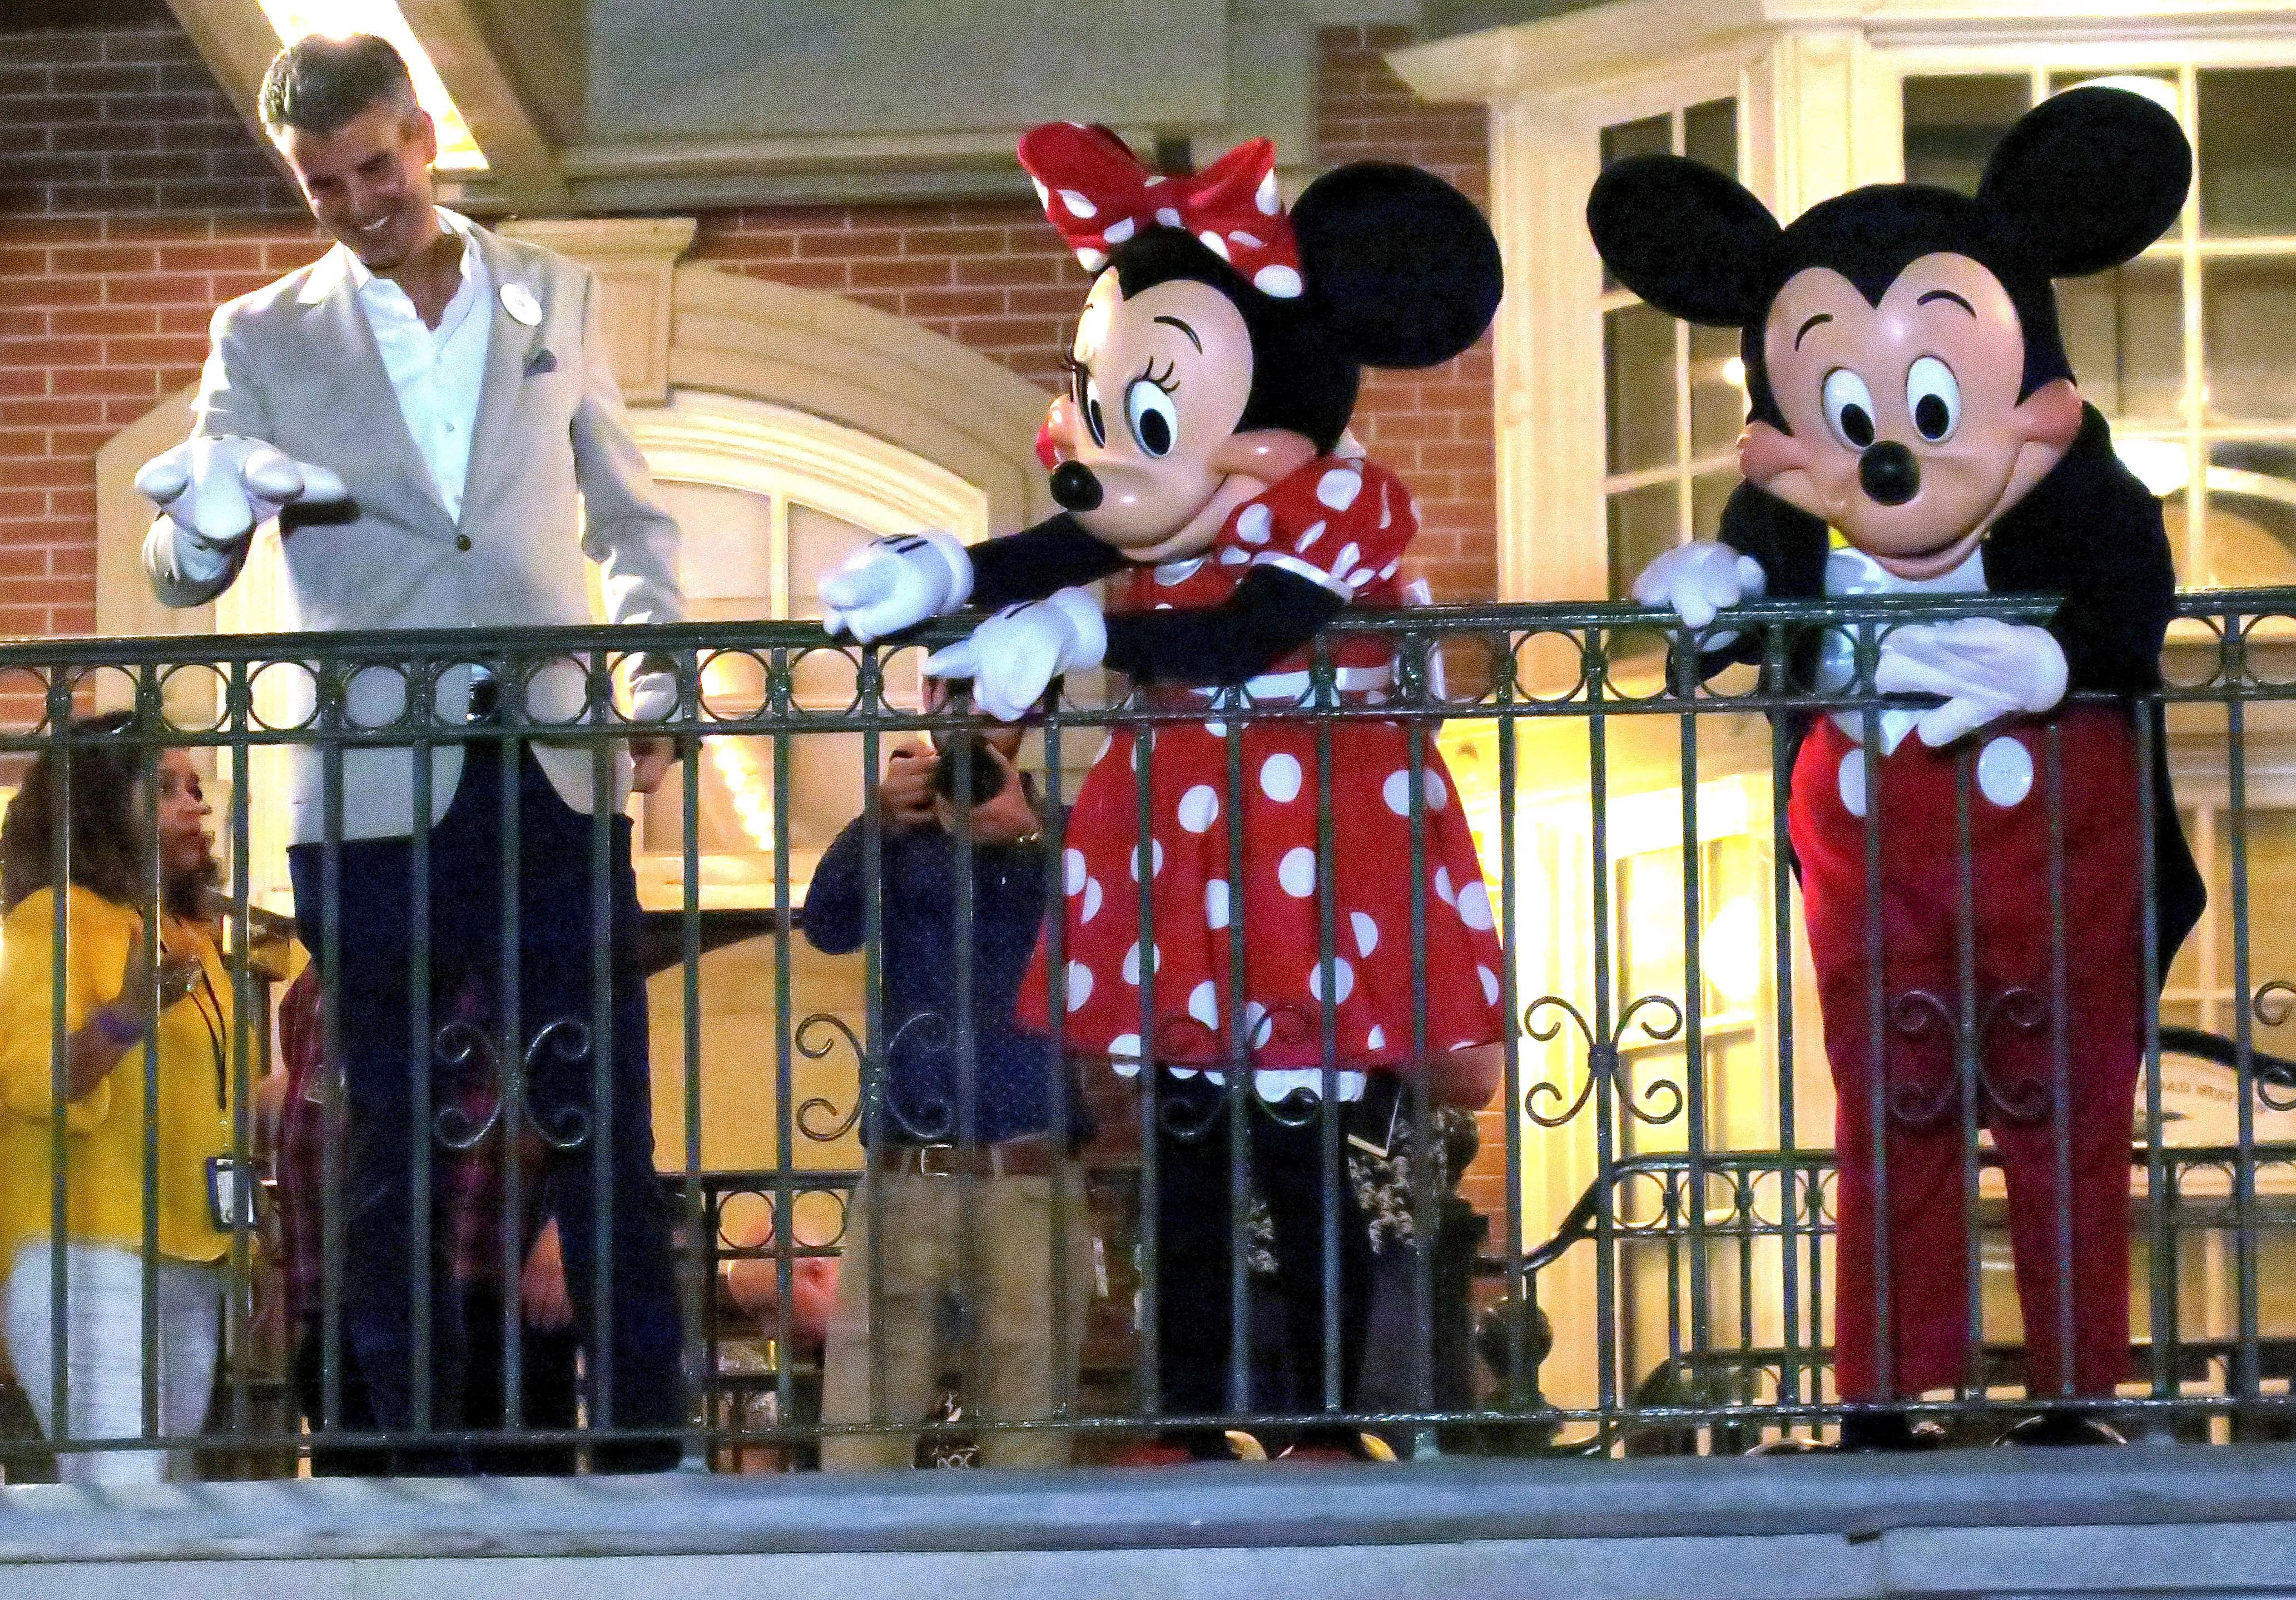 Coronavirus: Disney World officially closes after drawing big crowds